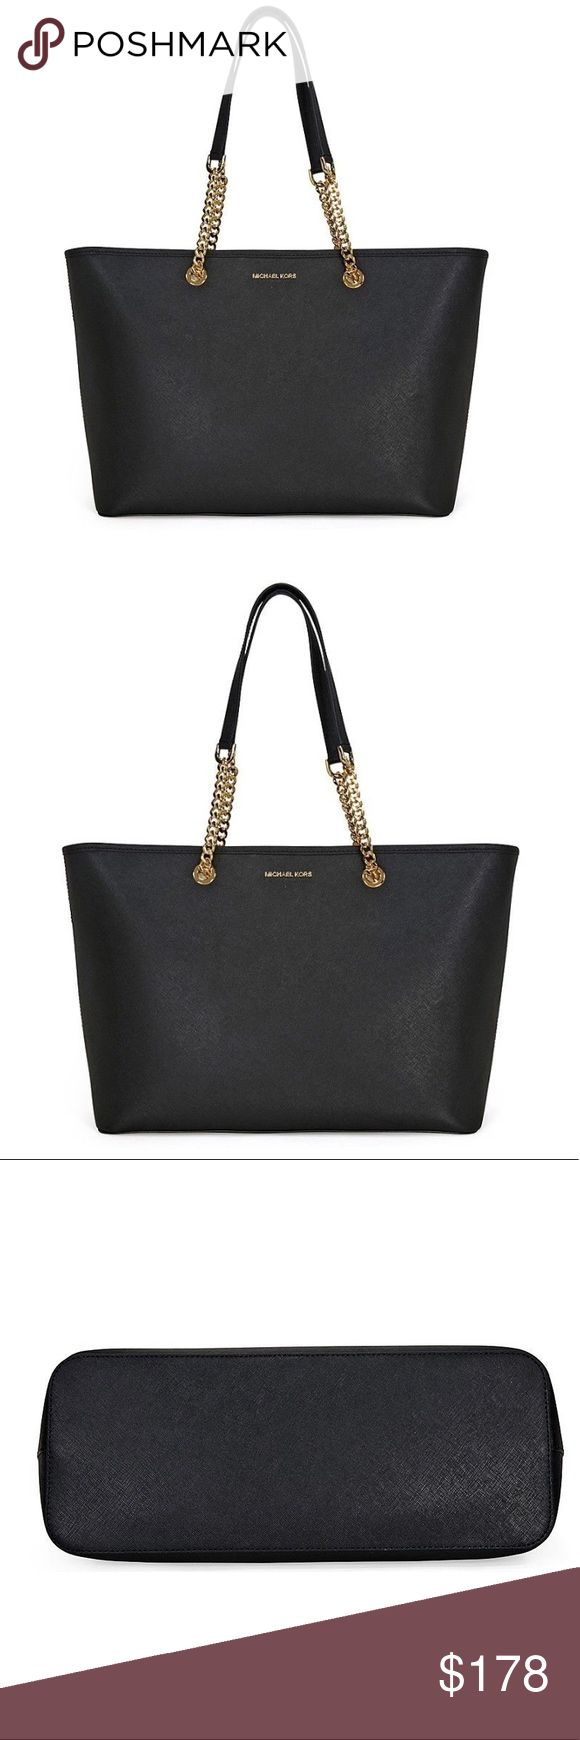 """Michael Kors Saffiano Jet Set Medium Tote Brand new with tags, Black. Gold link chain. Dimensions: 17"""" x 10.5"""" x 6"""". Perfect for your laptop. It has a pocket inside with a large zipper pouch. Retail $298 Michael Kors Bags Totes"""